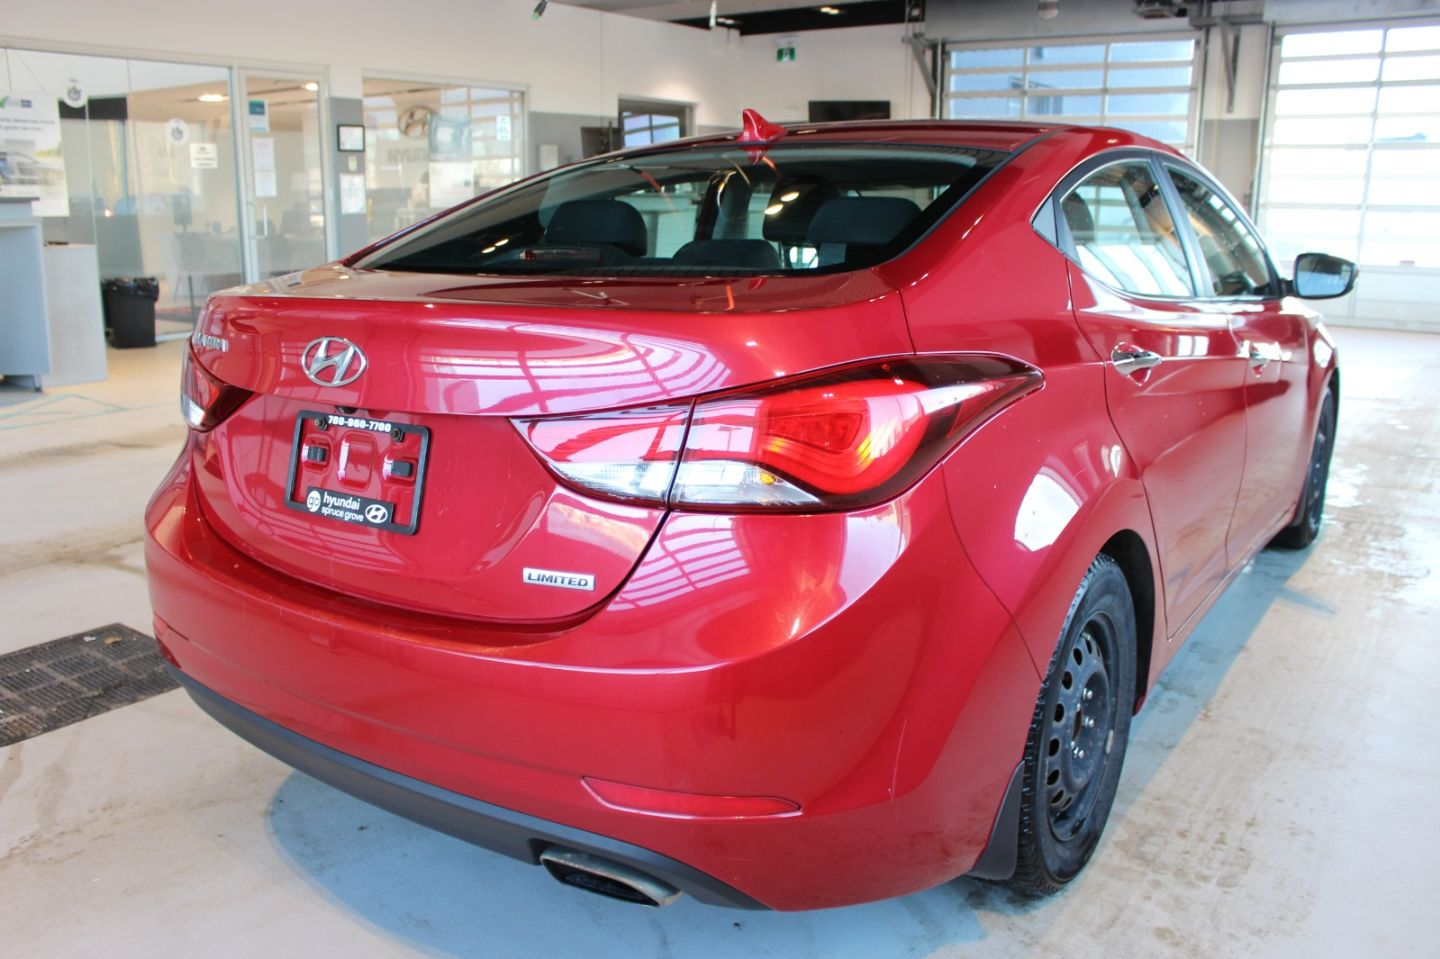 2014 Hyundai Elantra Limited w/Navi for sale in Spruce Grove, Alberta